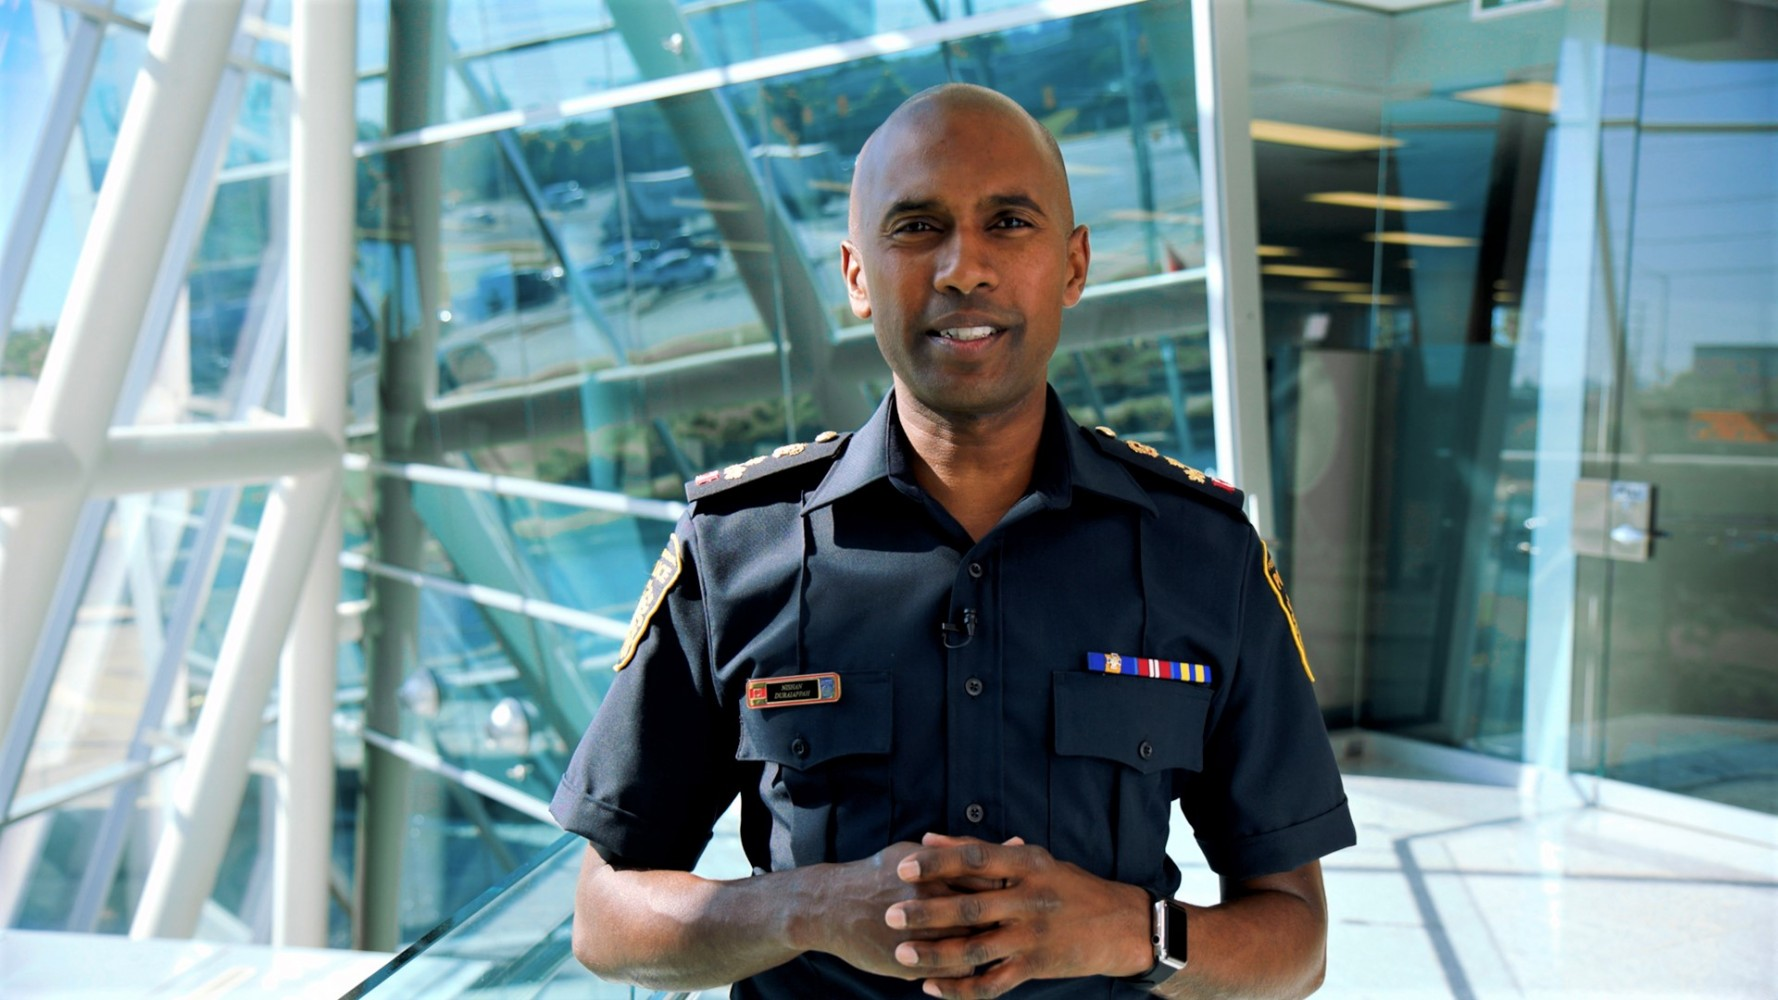 Human Rights Commission asks for community buy-in as advocates voice scepticism over initiative with troubled Peel Police force